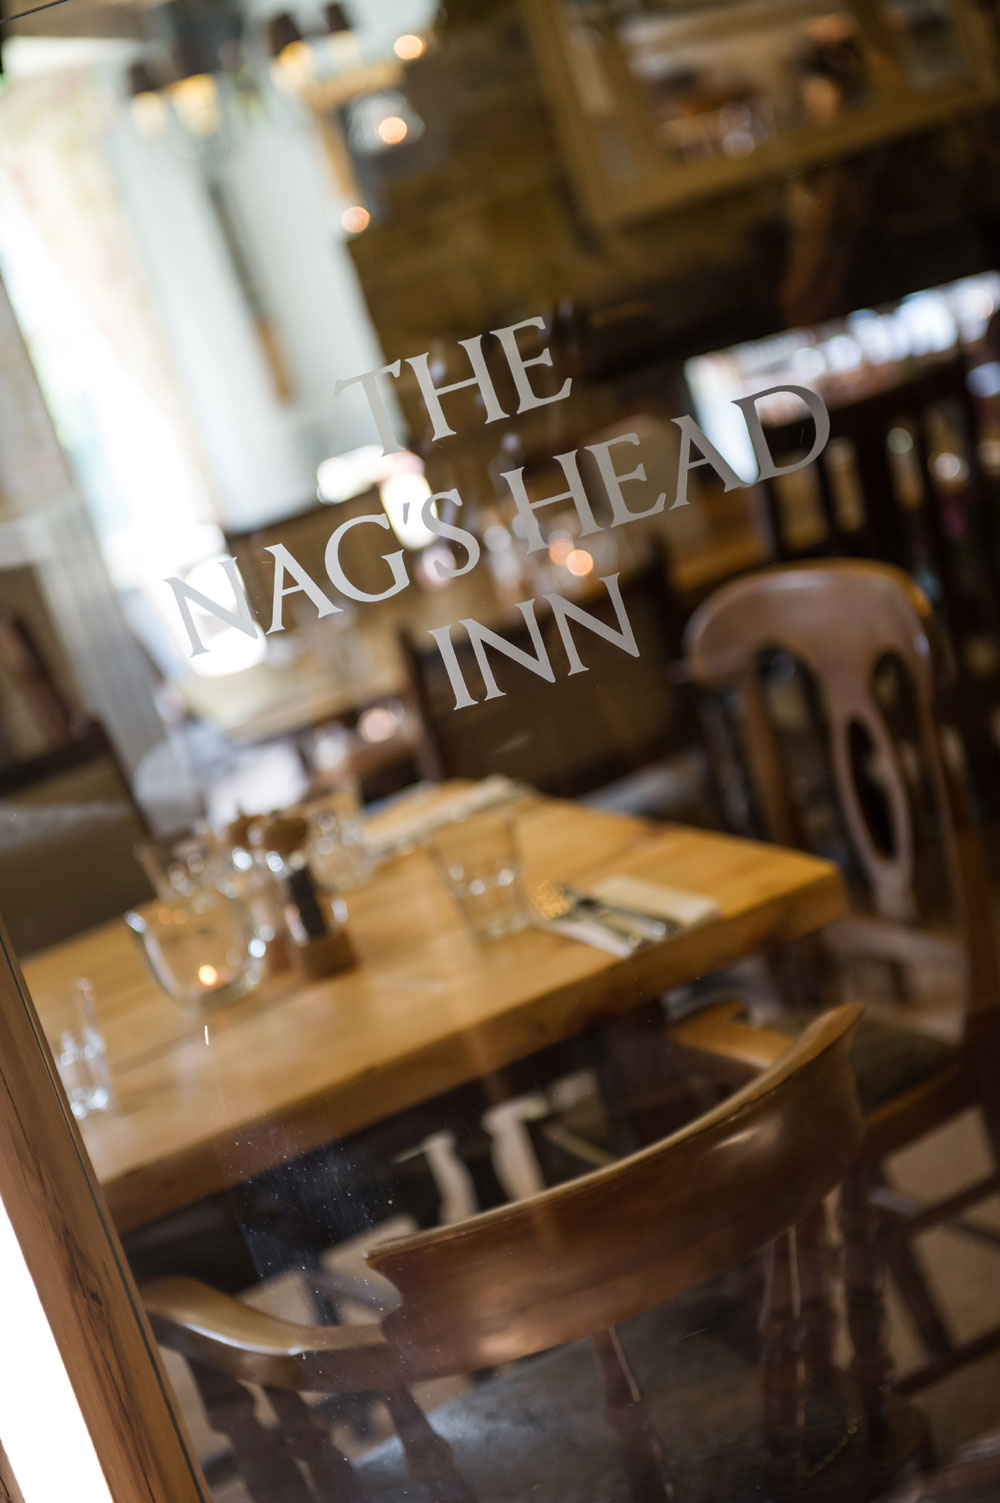 Image of The Nag's Head Inn - Woking